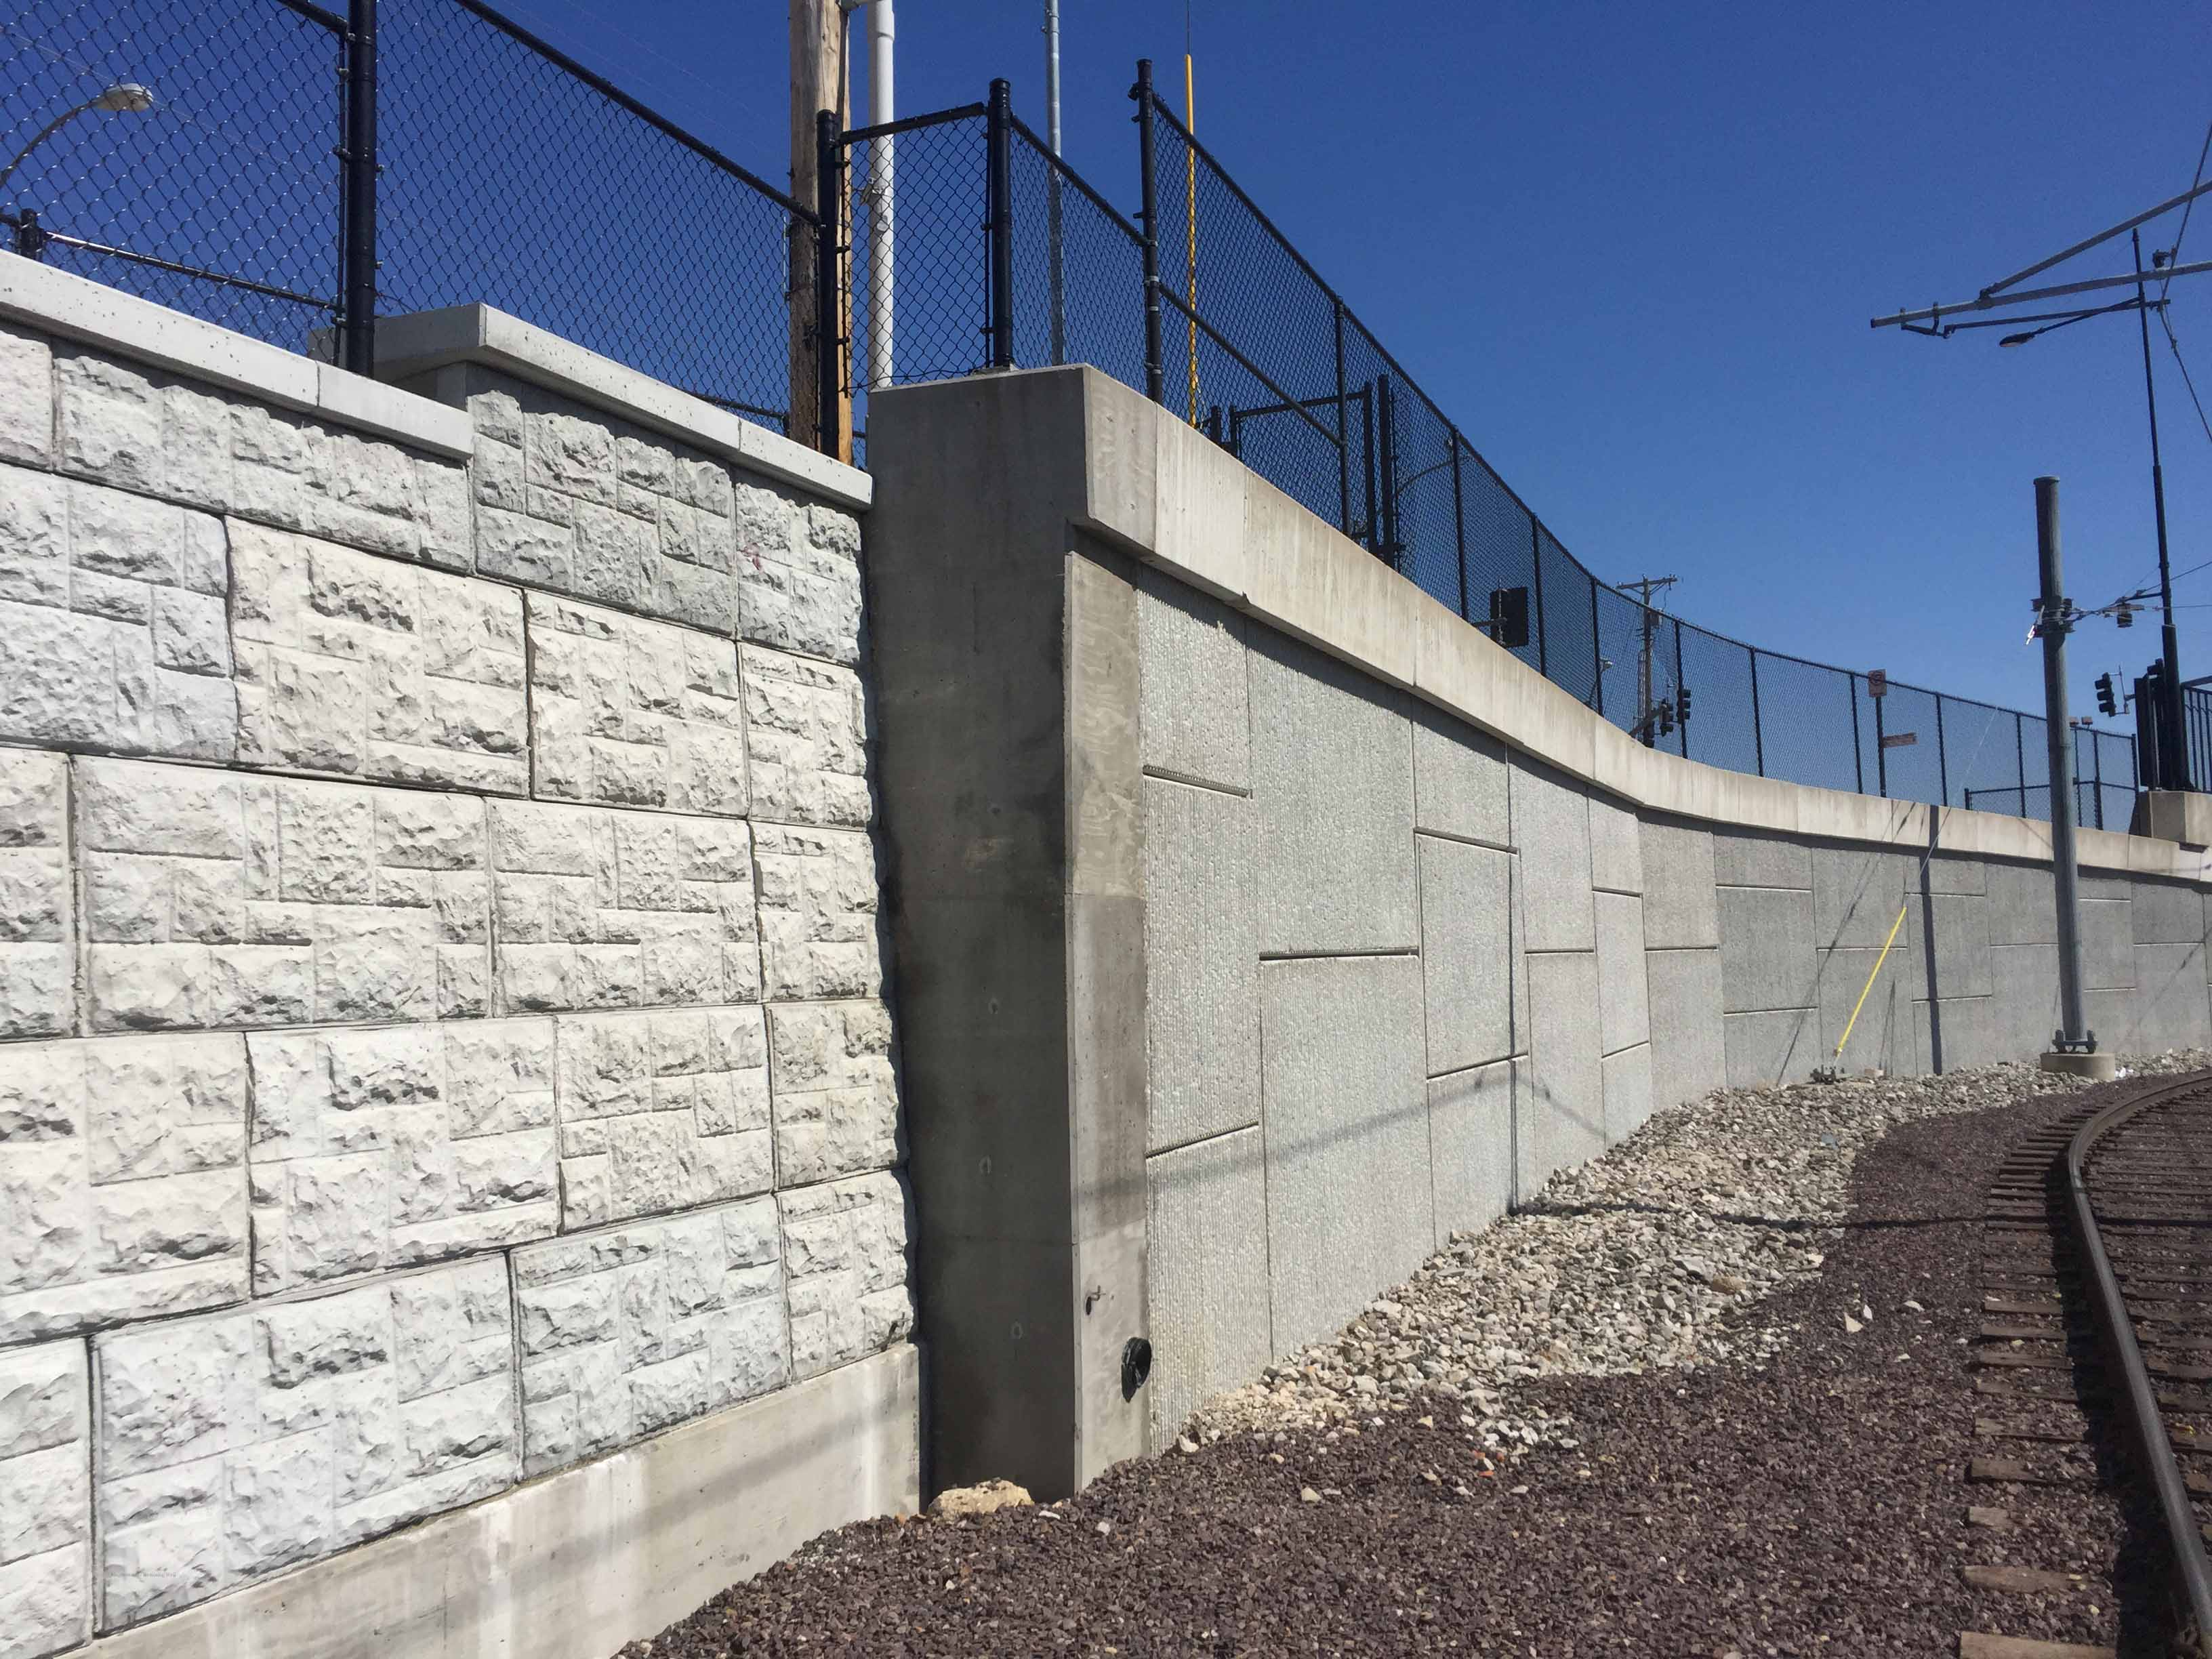 MagnumStone castle face retaining wall in st louis missouri rail abutment